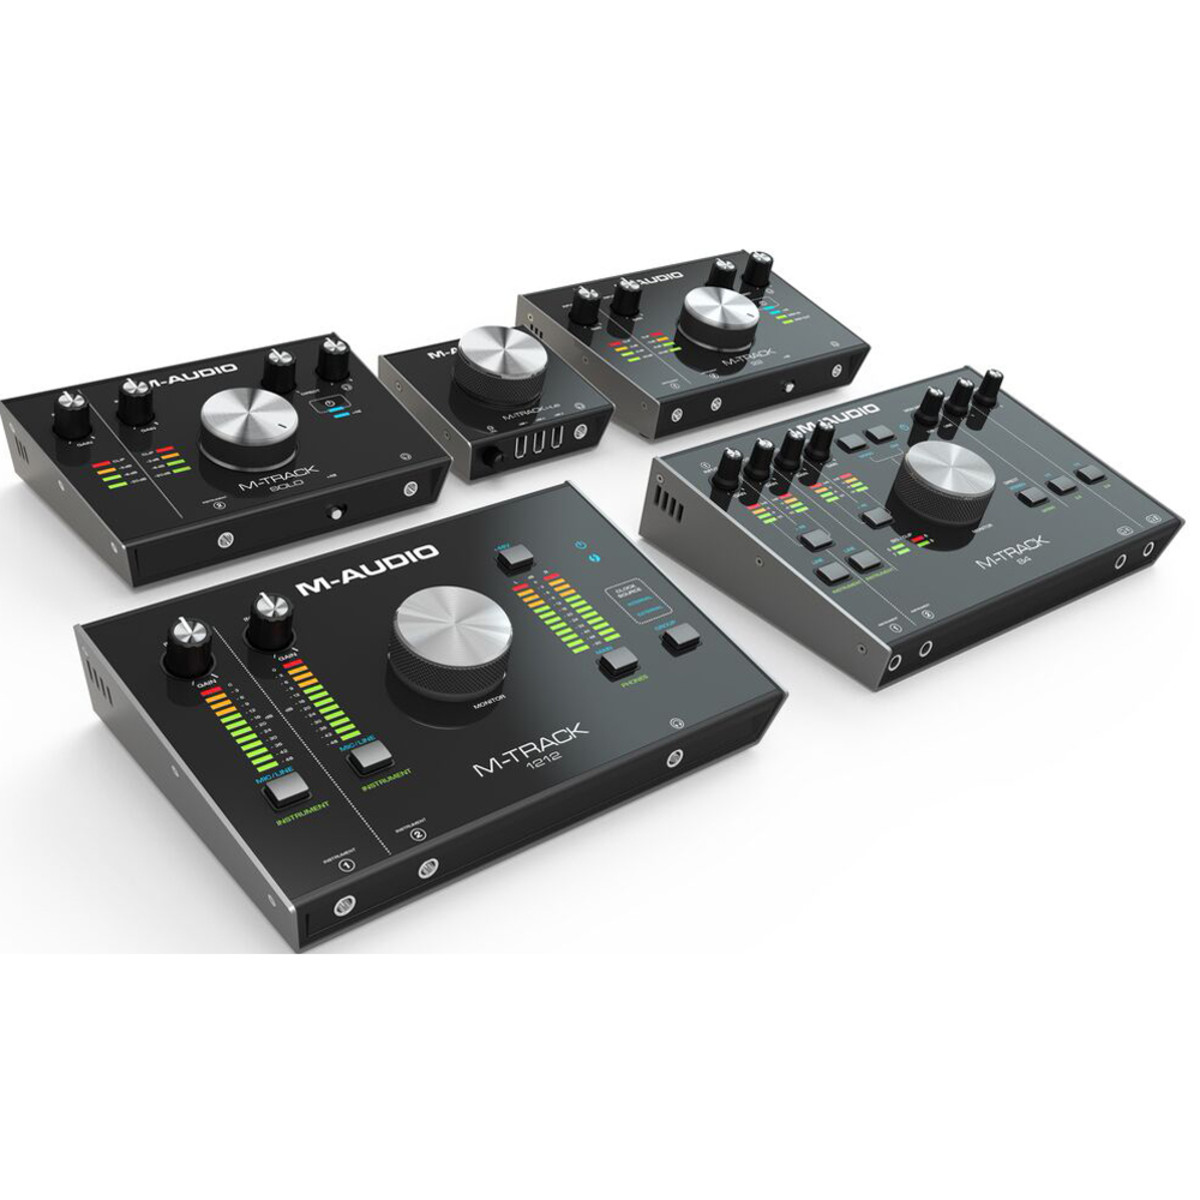 m audio m track 8x4 audio interface at gear4music. Black Bedroom Furniture Sets. Home Design Ideas